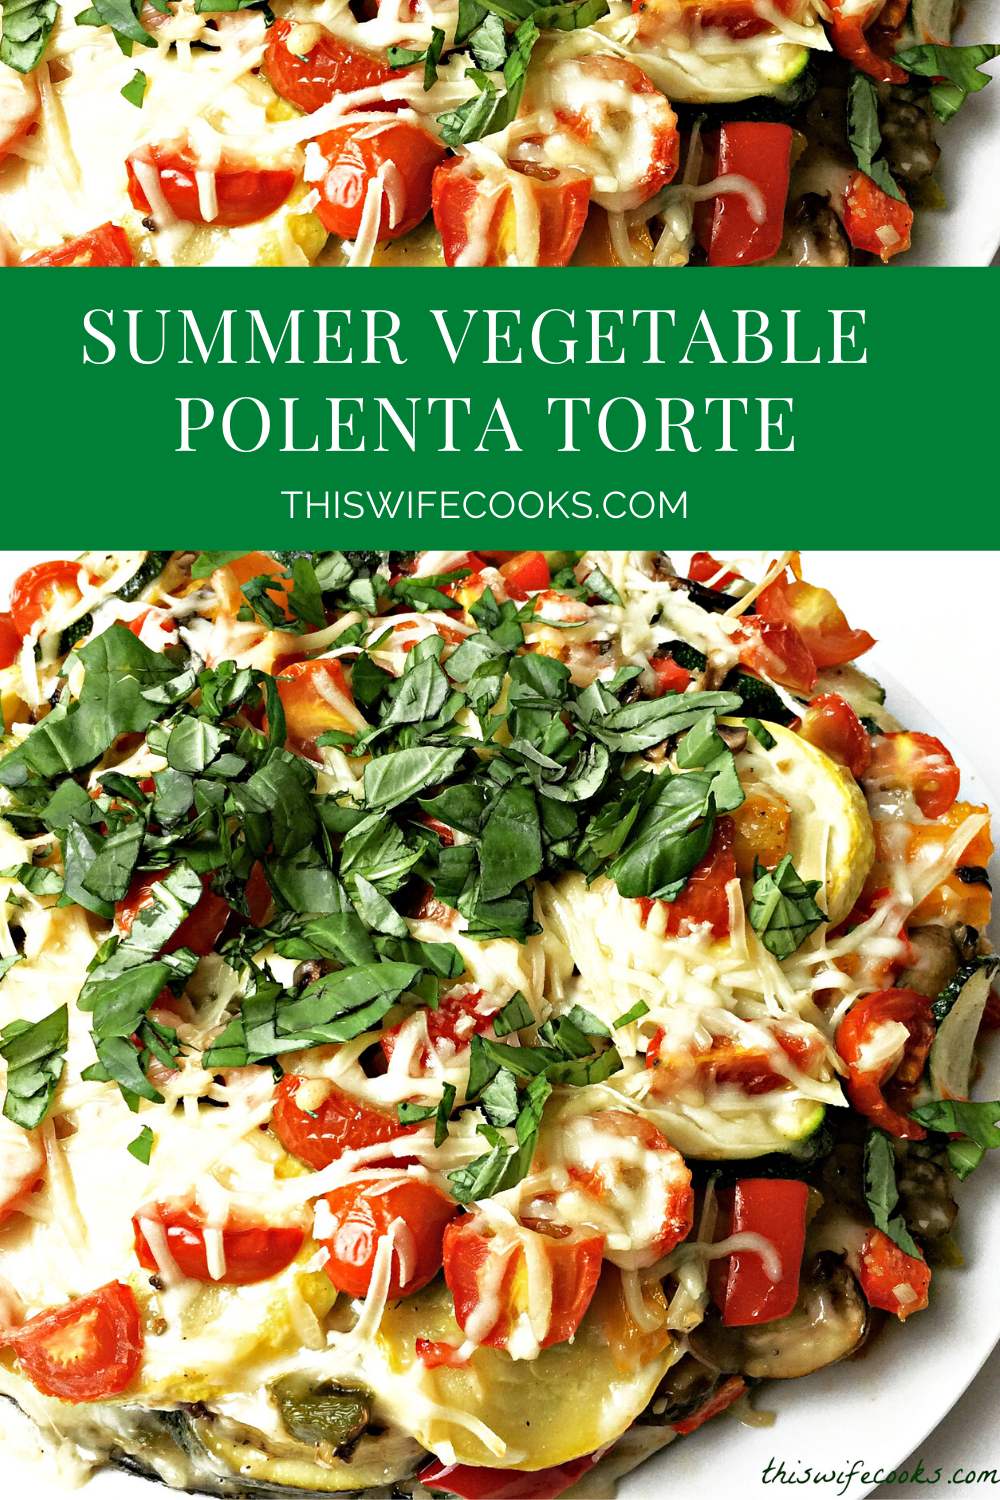 Late Summer Vegetable & Polenta Torte | This hearty vegetable and polenta torte makes good use of some of the most popular homegrown veggies and the presentation is nothing short of impressive! via @thiswifecooks